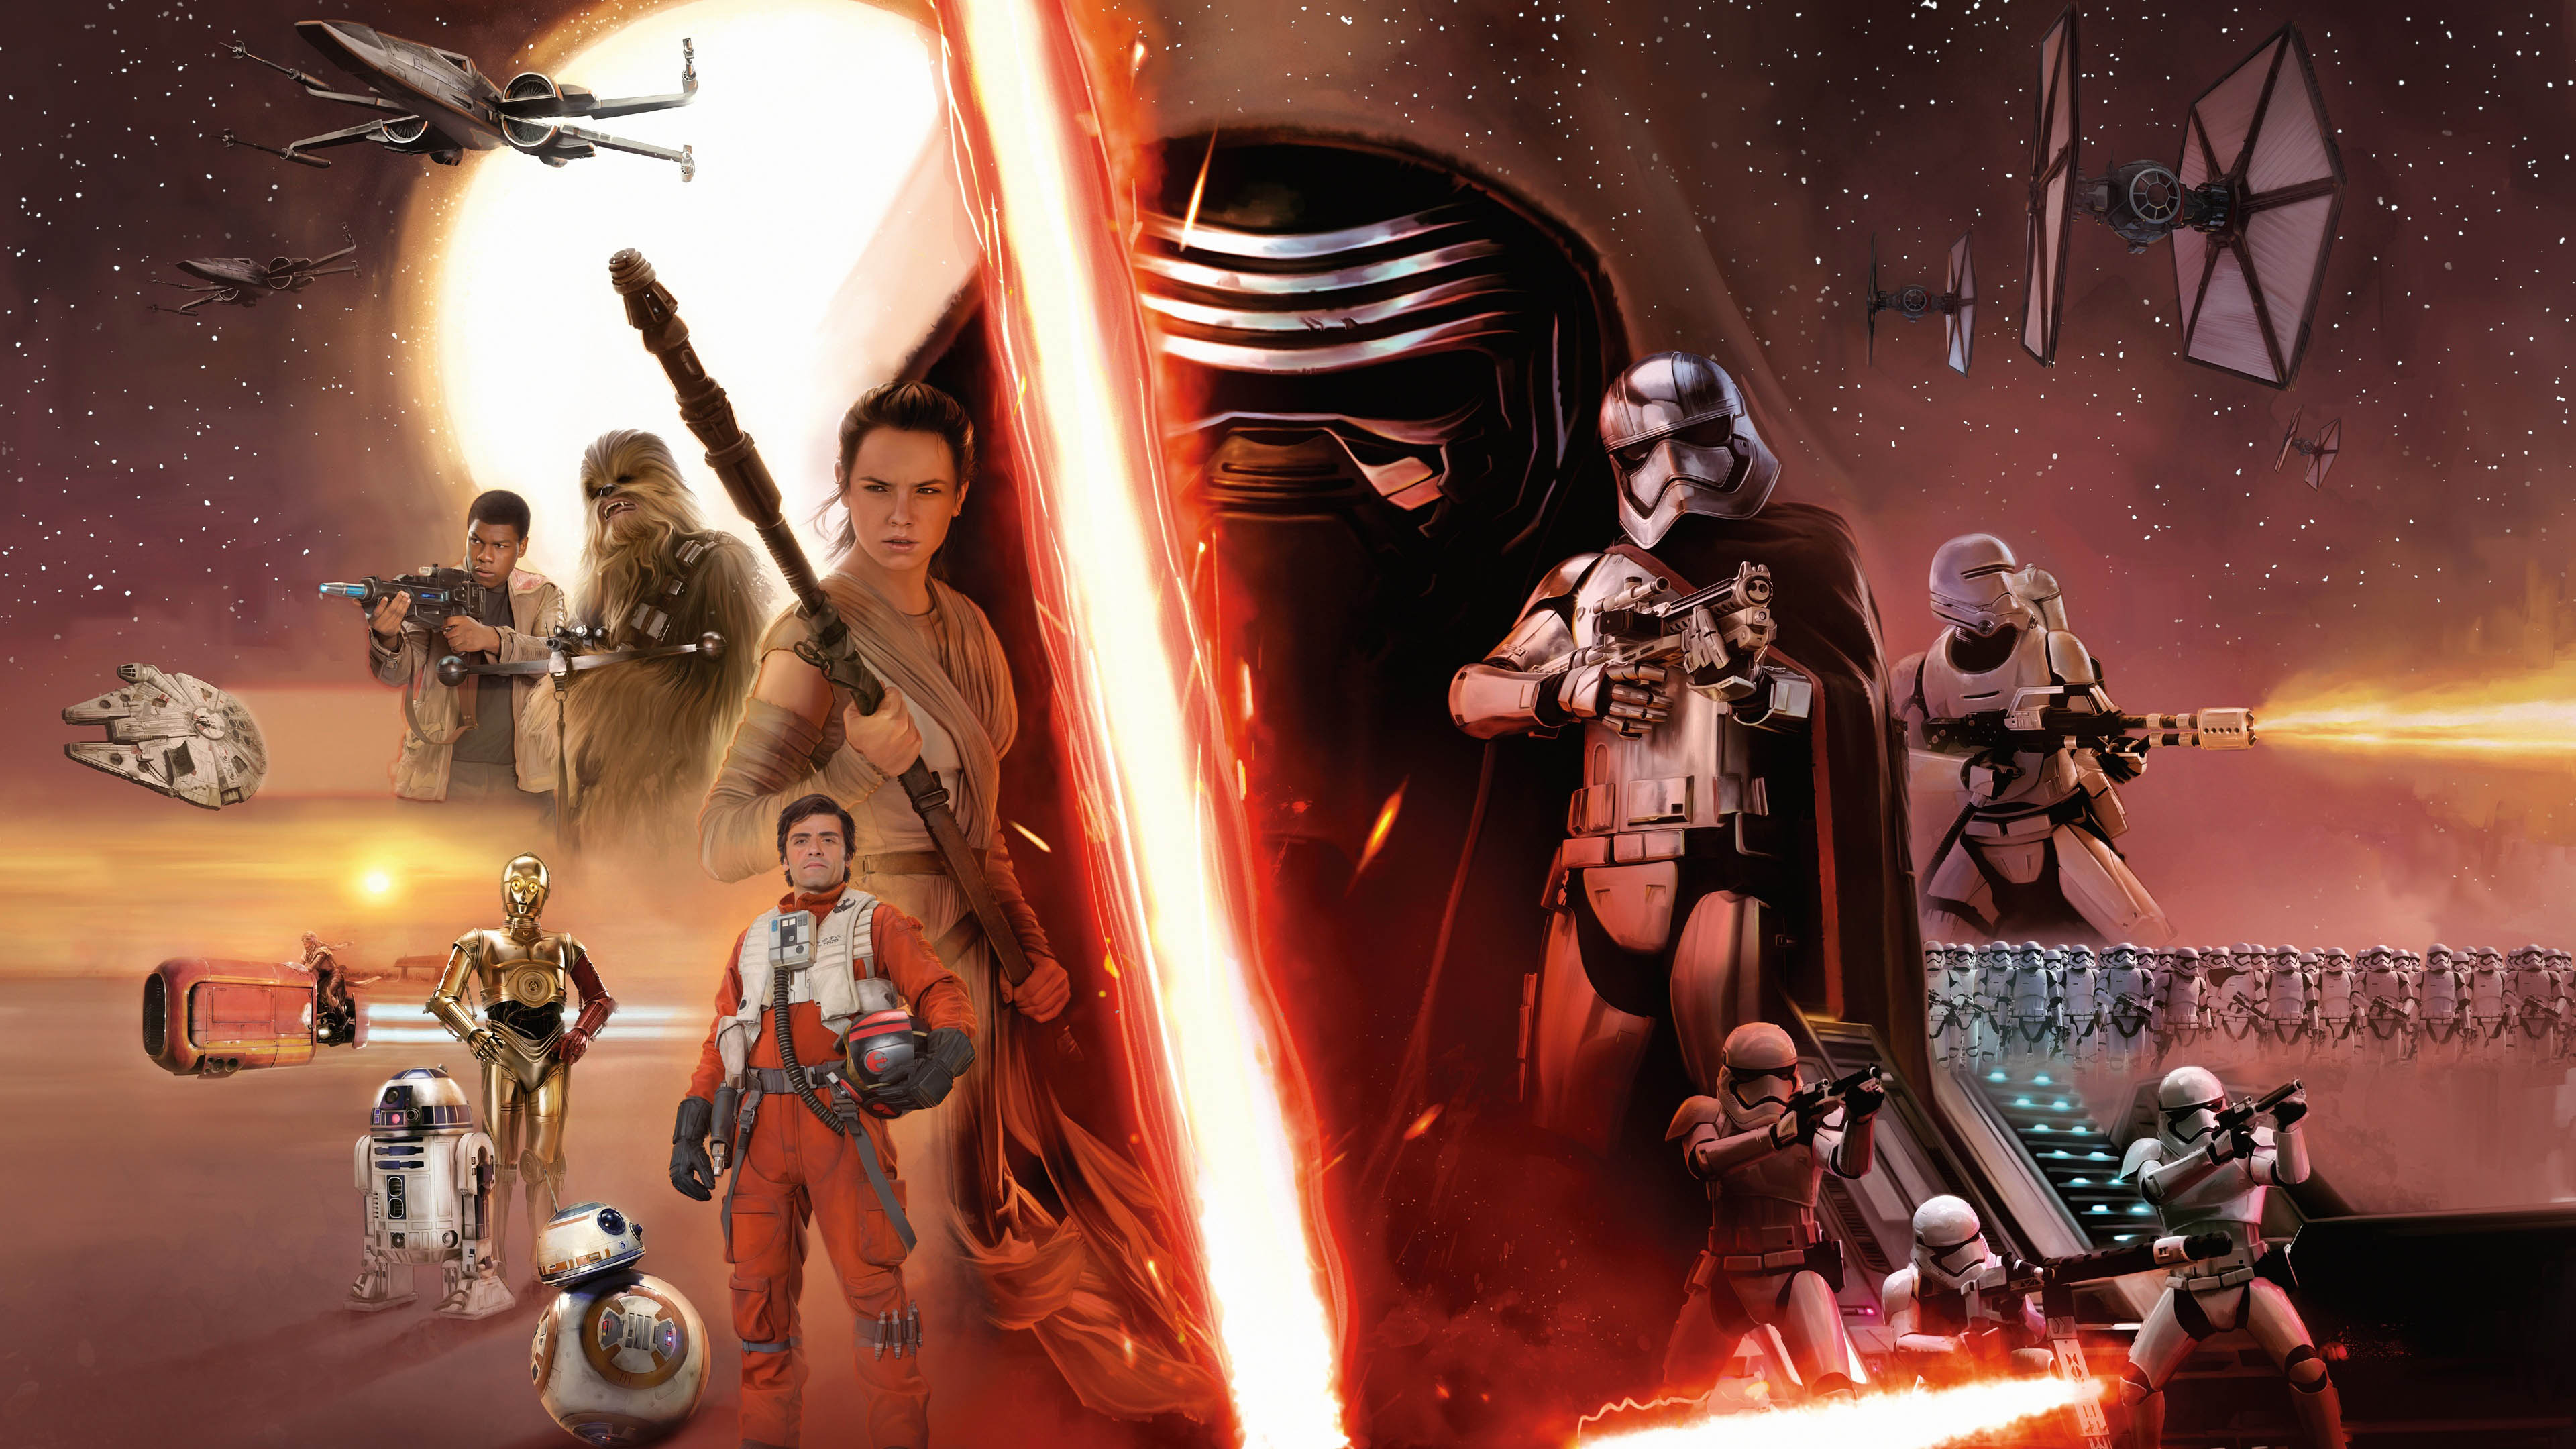 Star Wars Characters Wallpaper